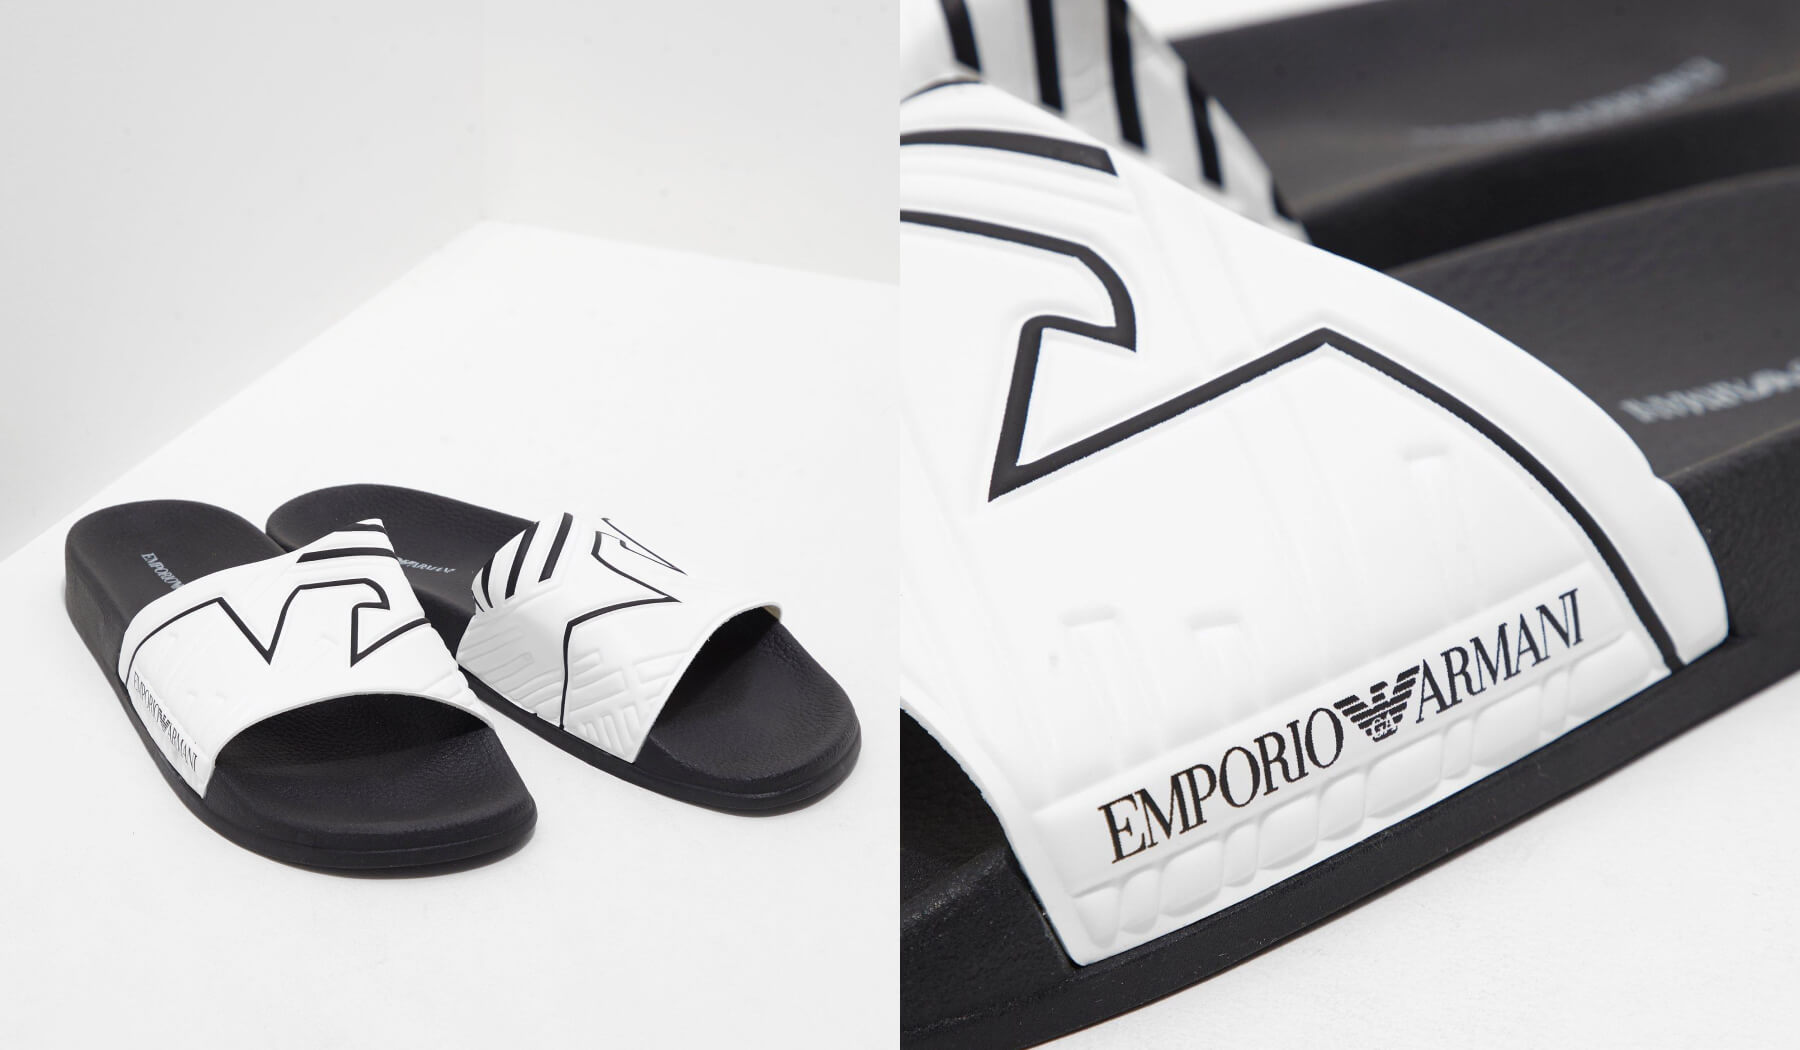 f953b6cb606 ... lines and feature the Emporio Armani logo to the side. Available in  both black and white